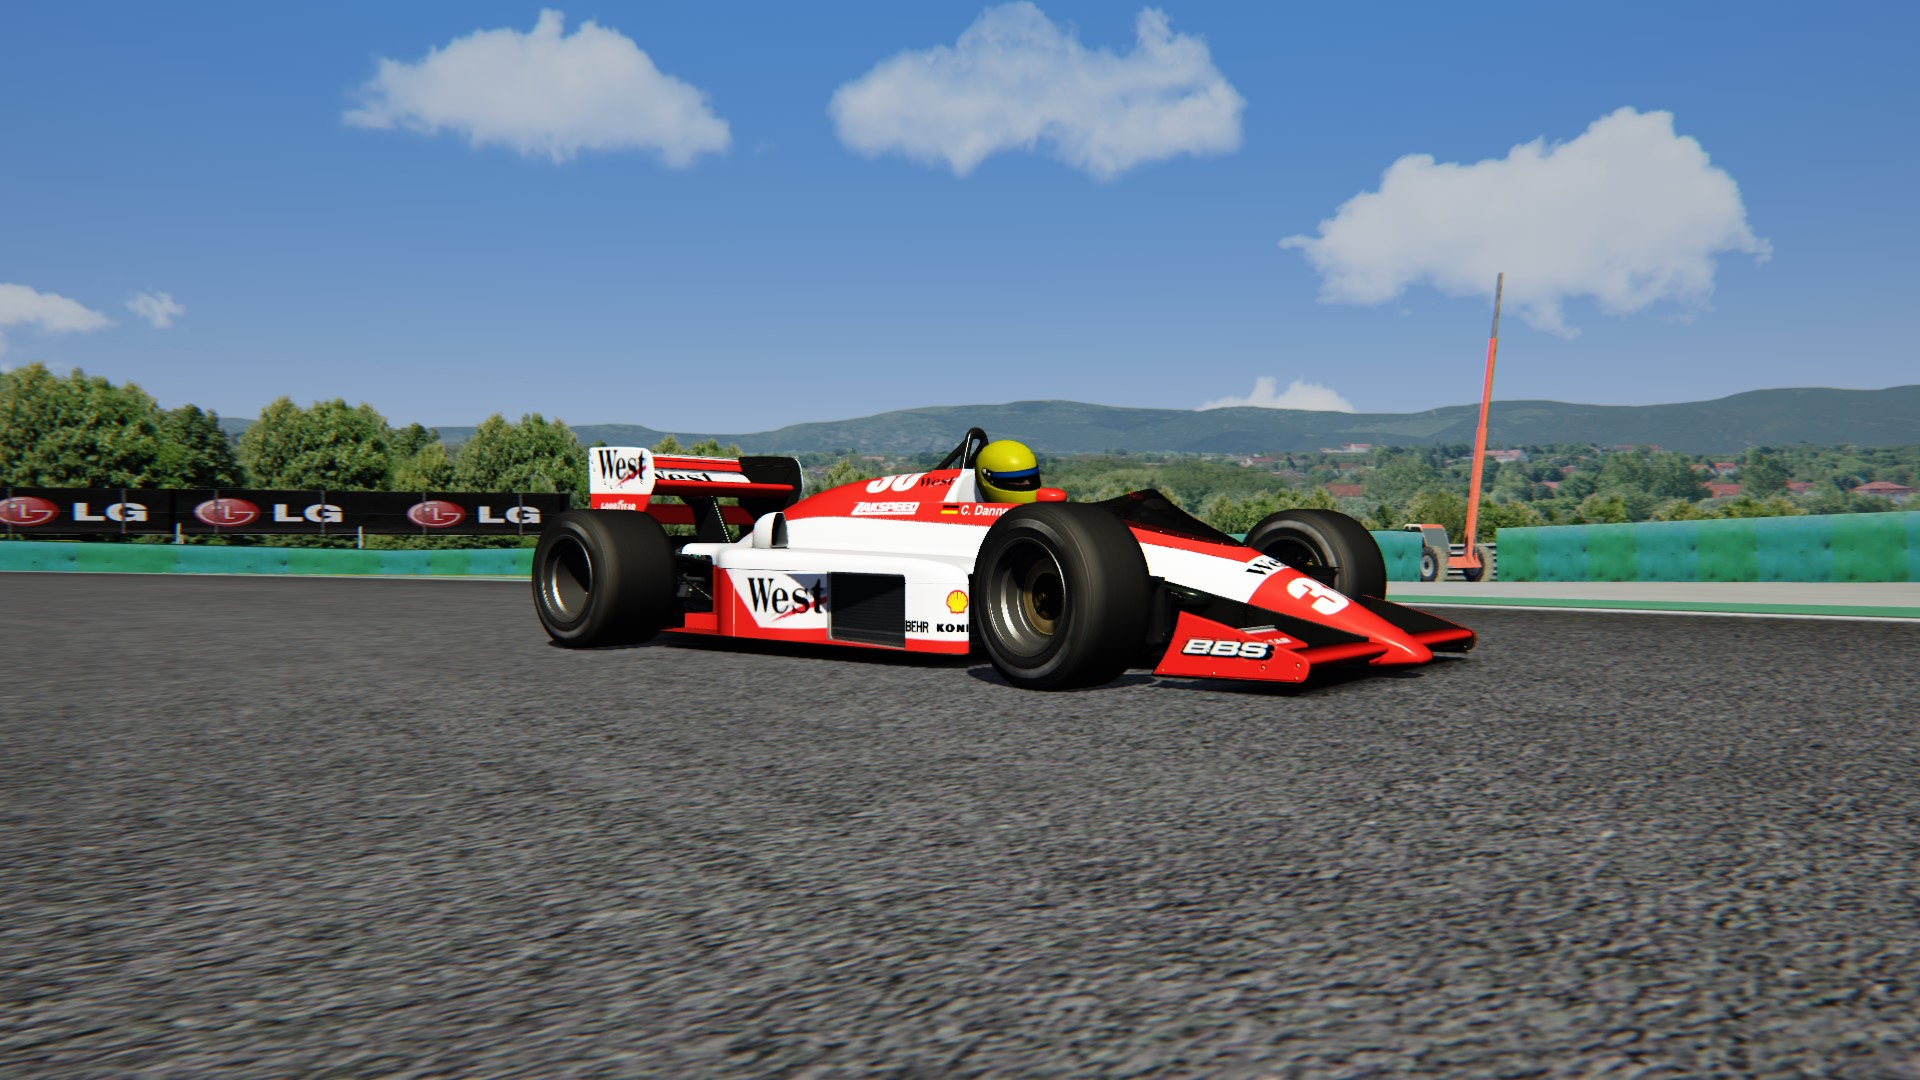 Screenshot_lotus_98t_hungaroring_27-7-2014-13-58-13.jpg